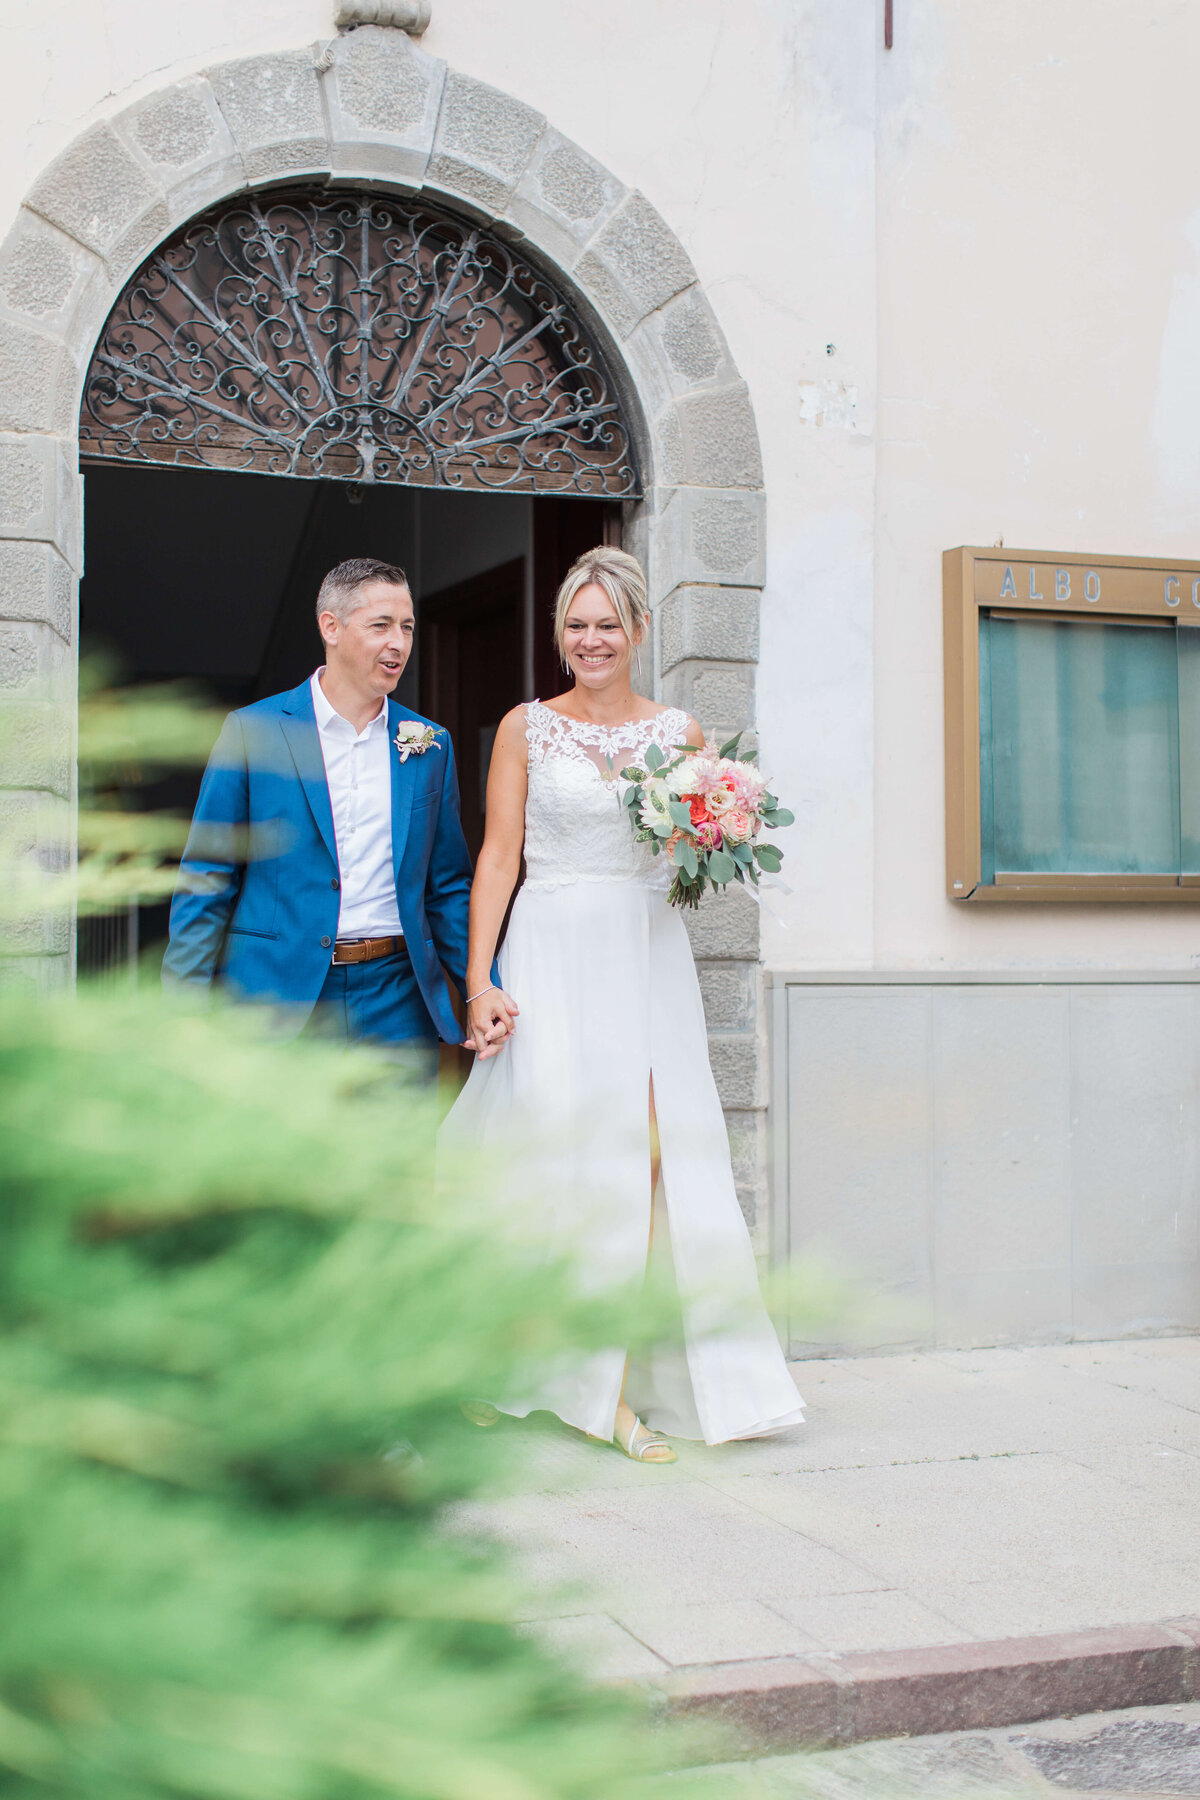 Wedding K&D - Lago d'Iseo - Italy 2018 26